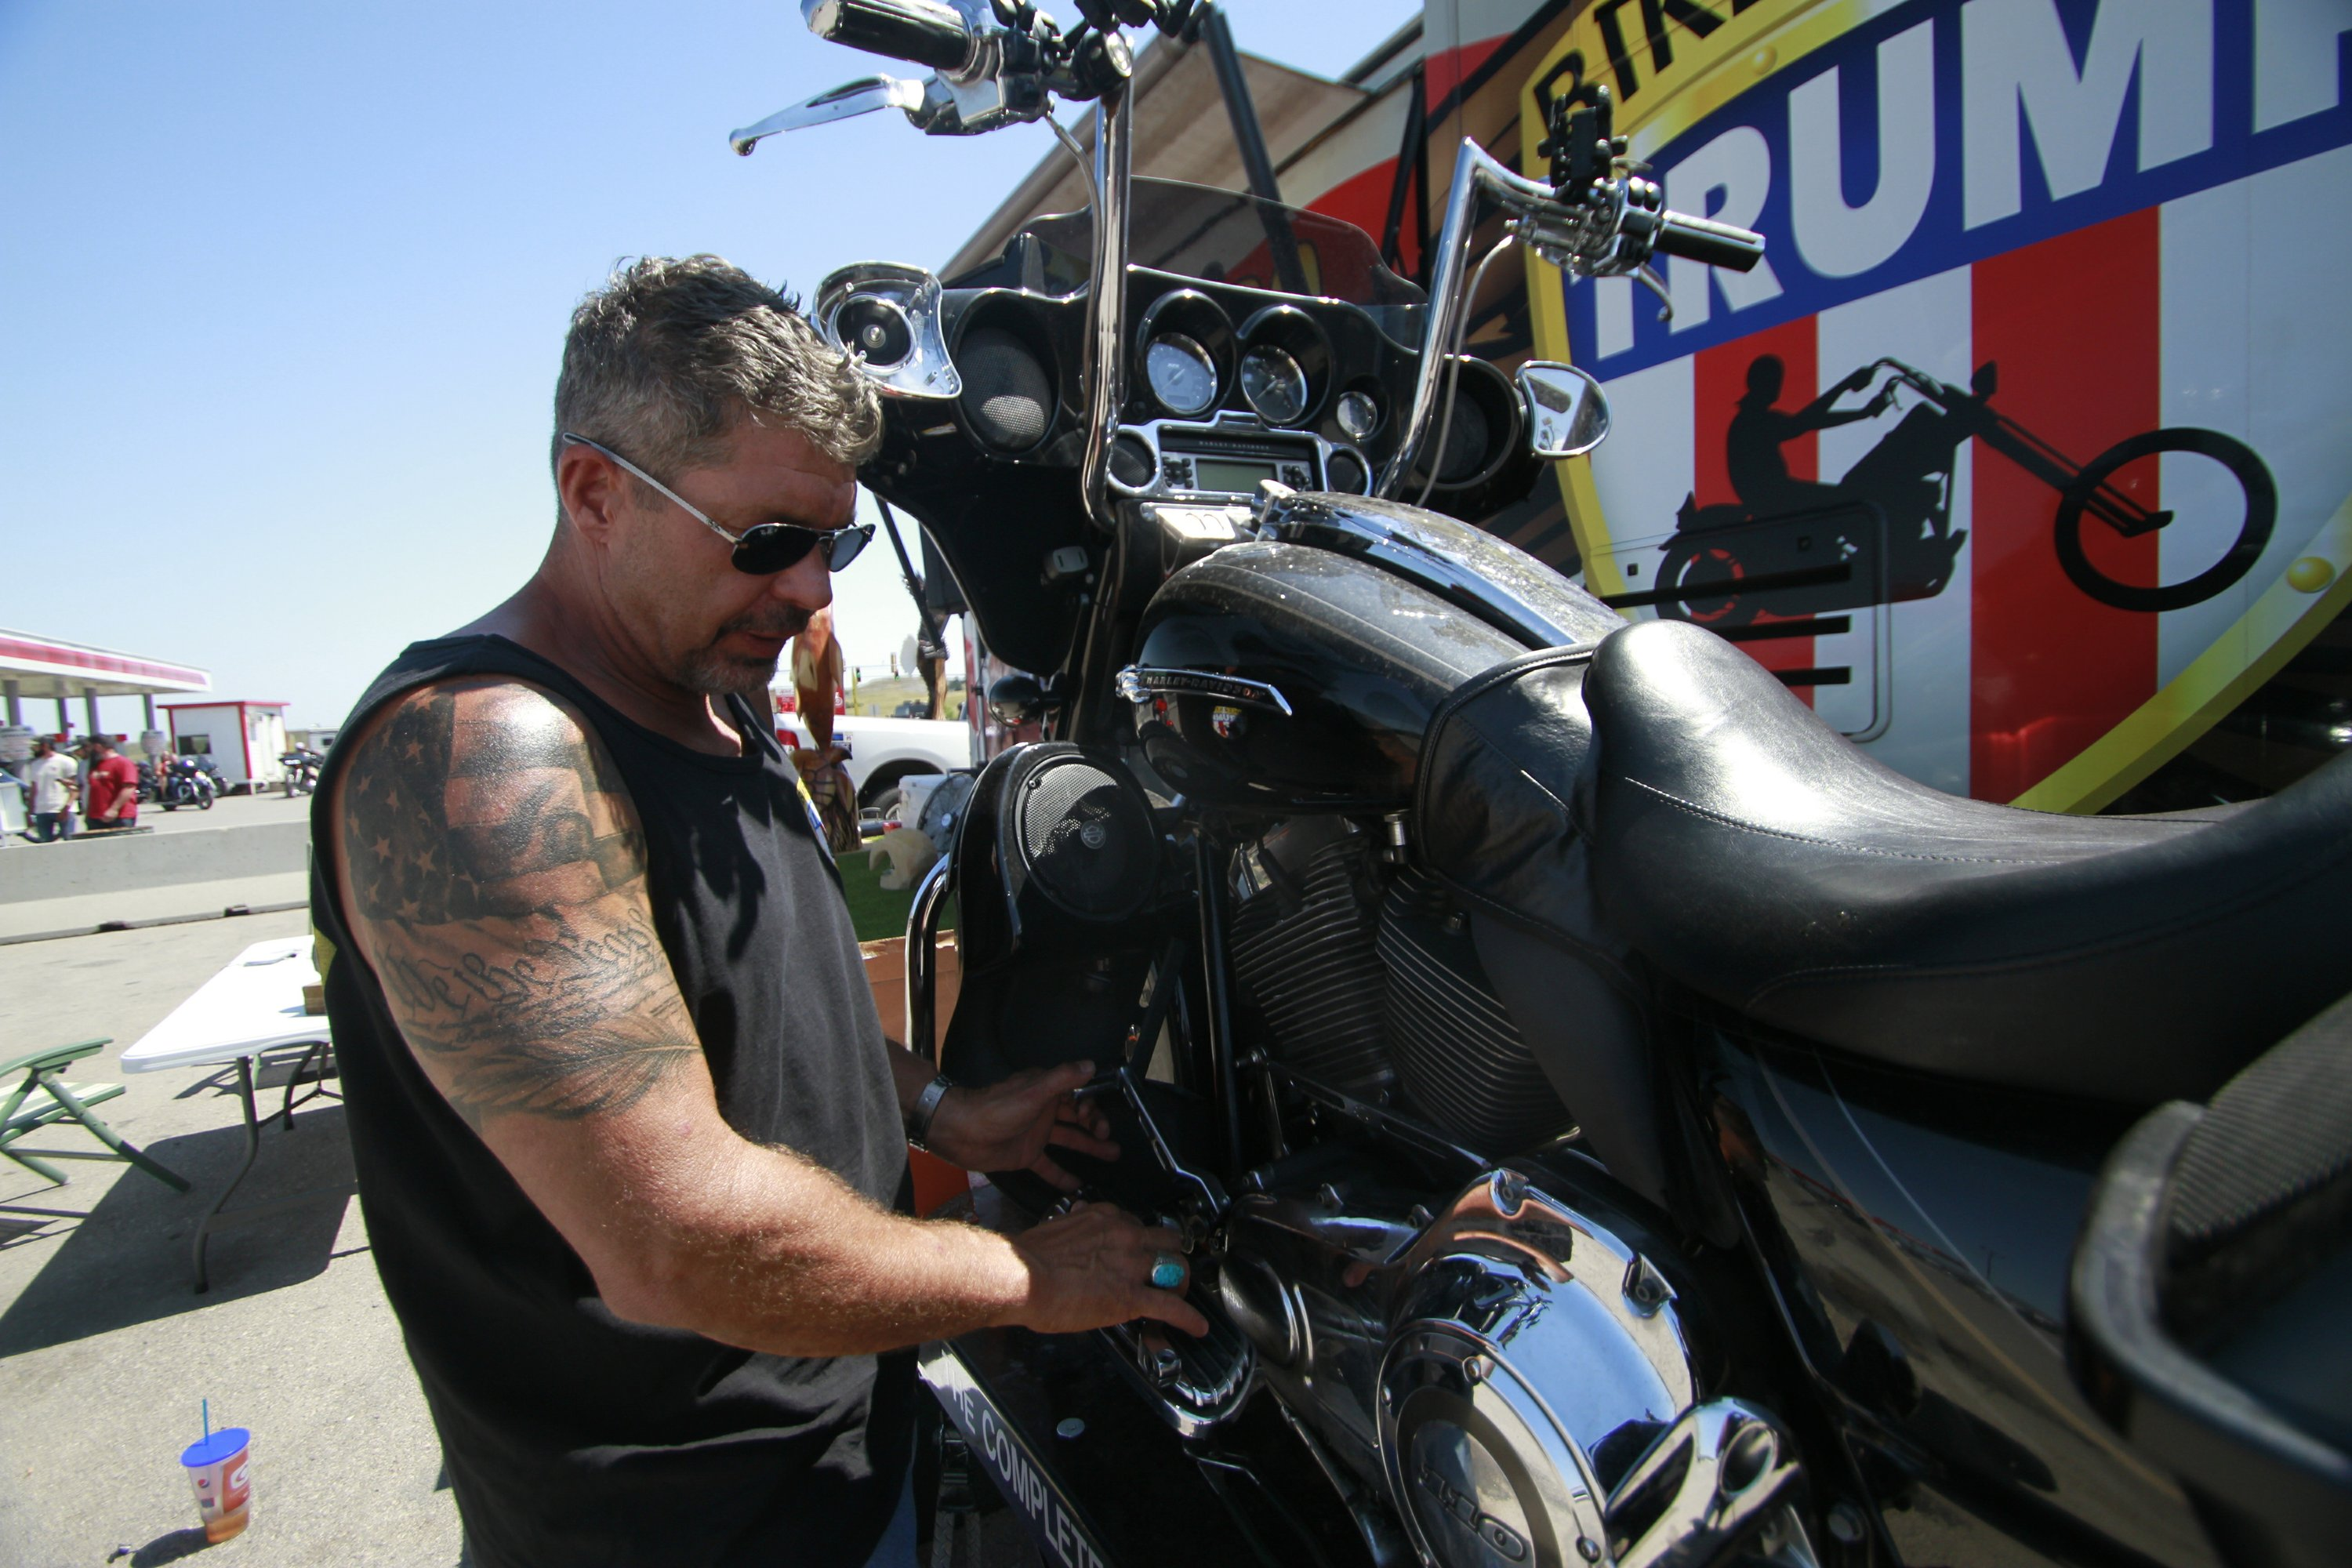 At Sturgis Trump Supporters Look To Turn Bikers Into Voters